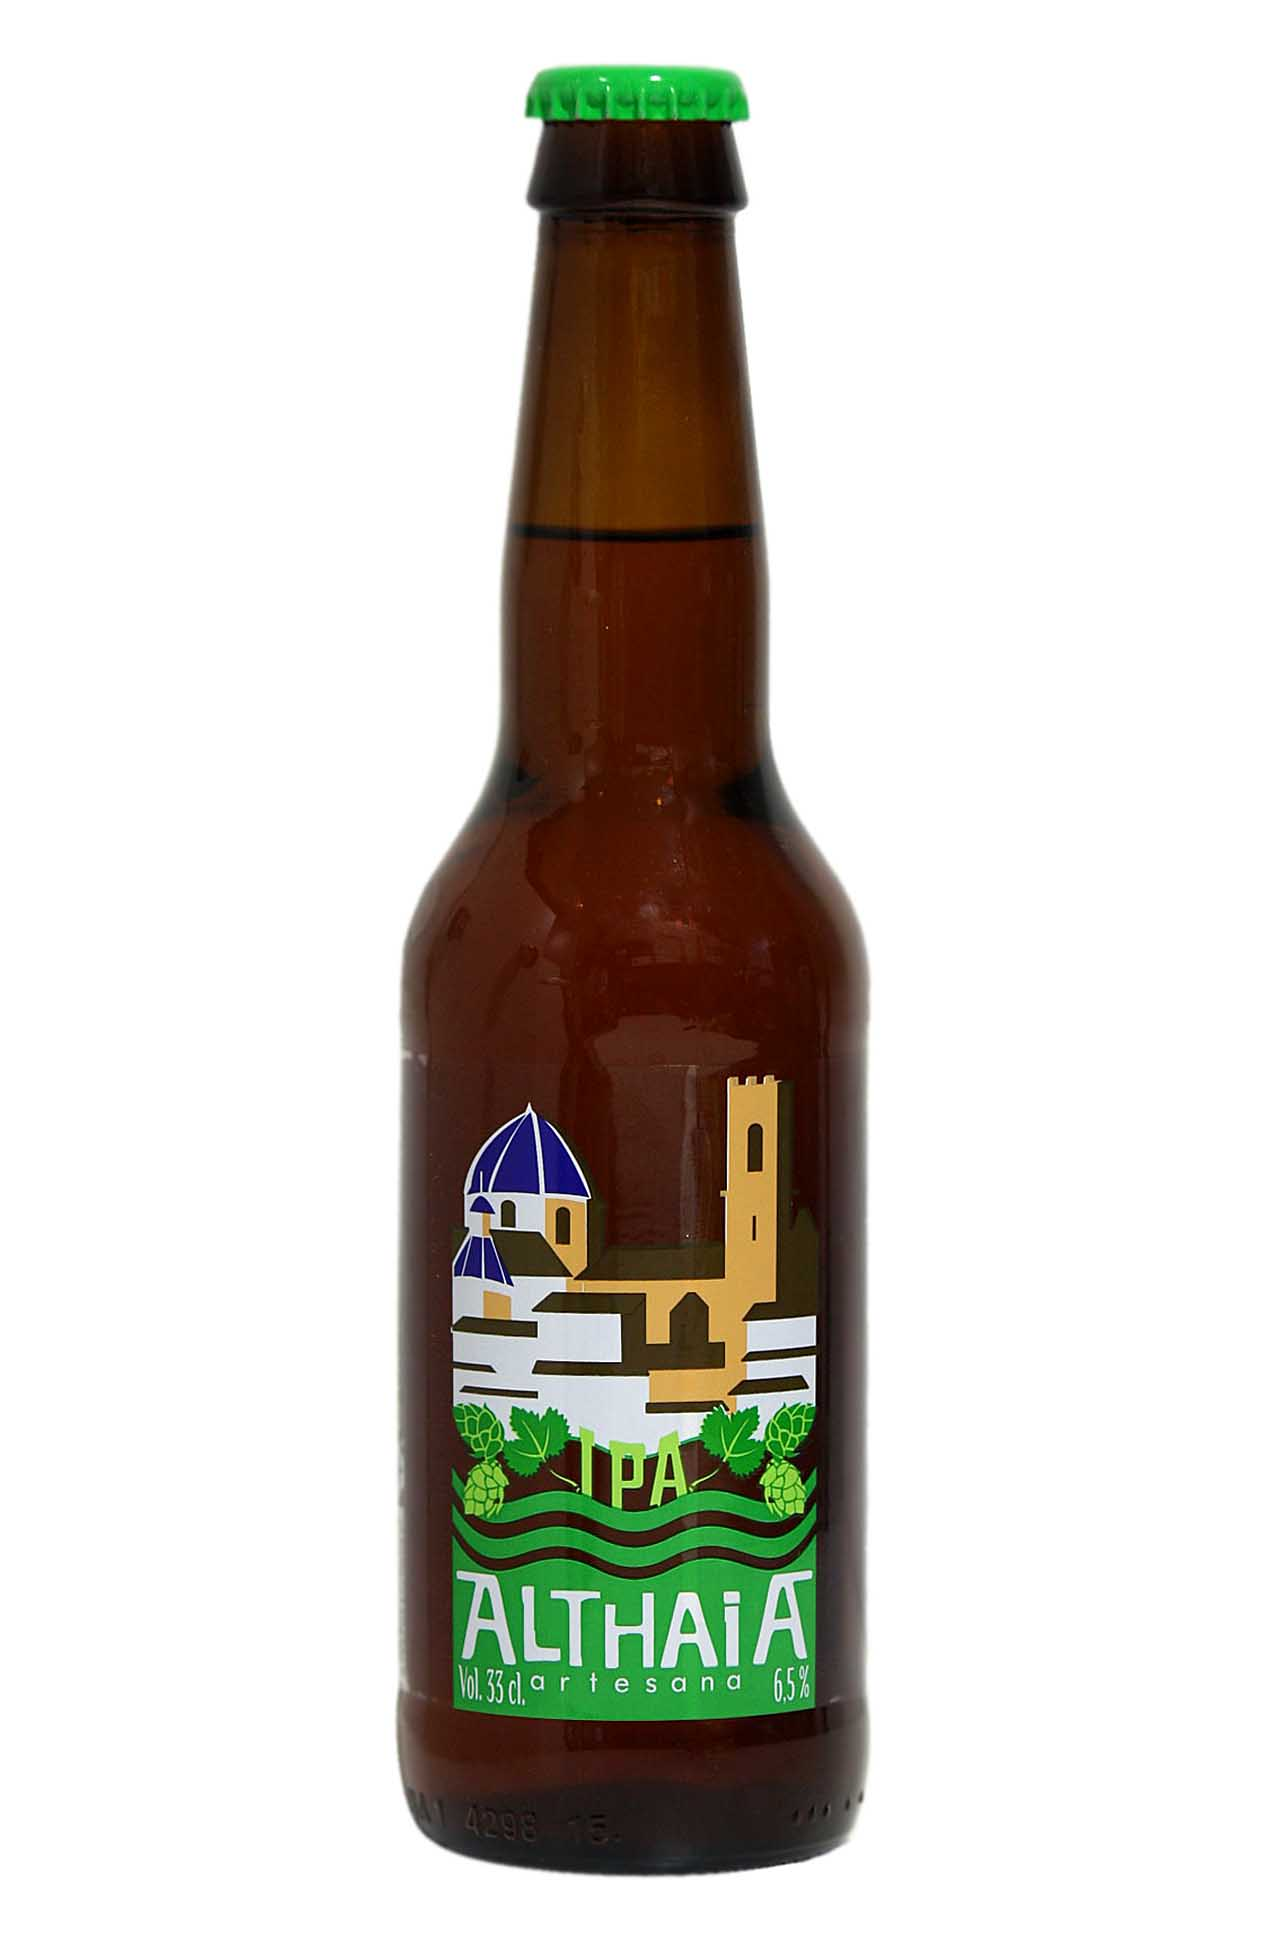 Altahia indian pale ale